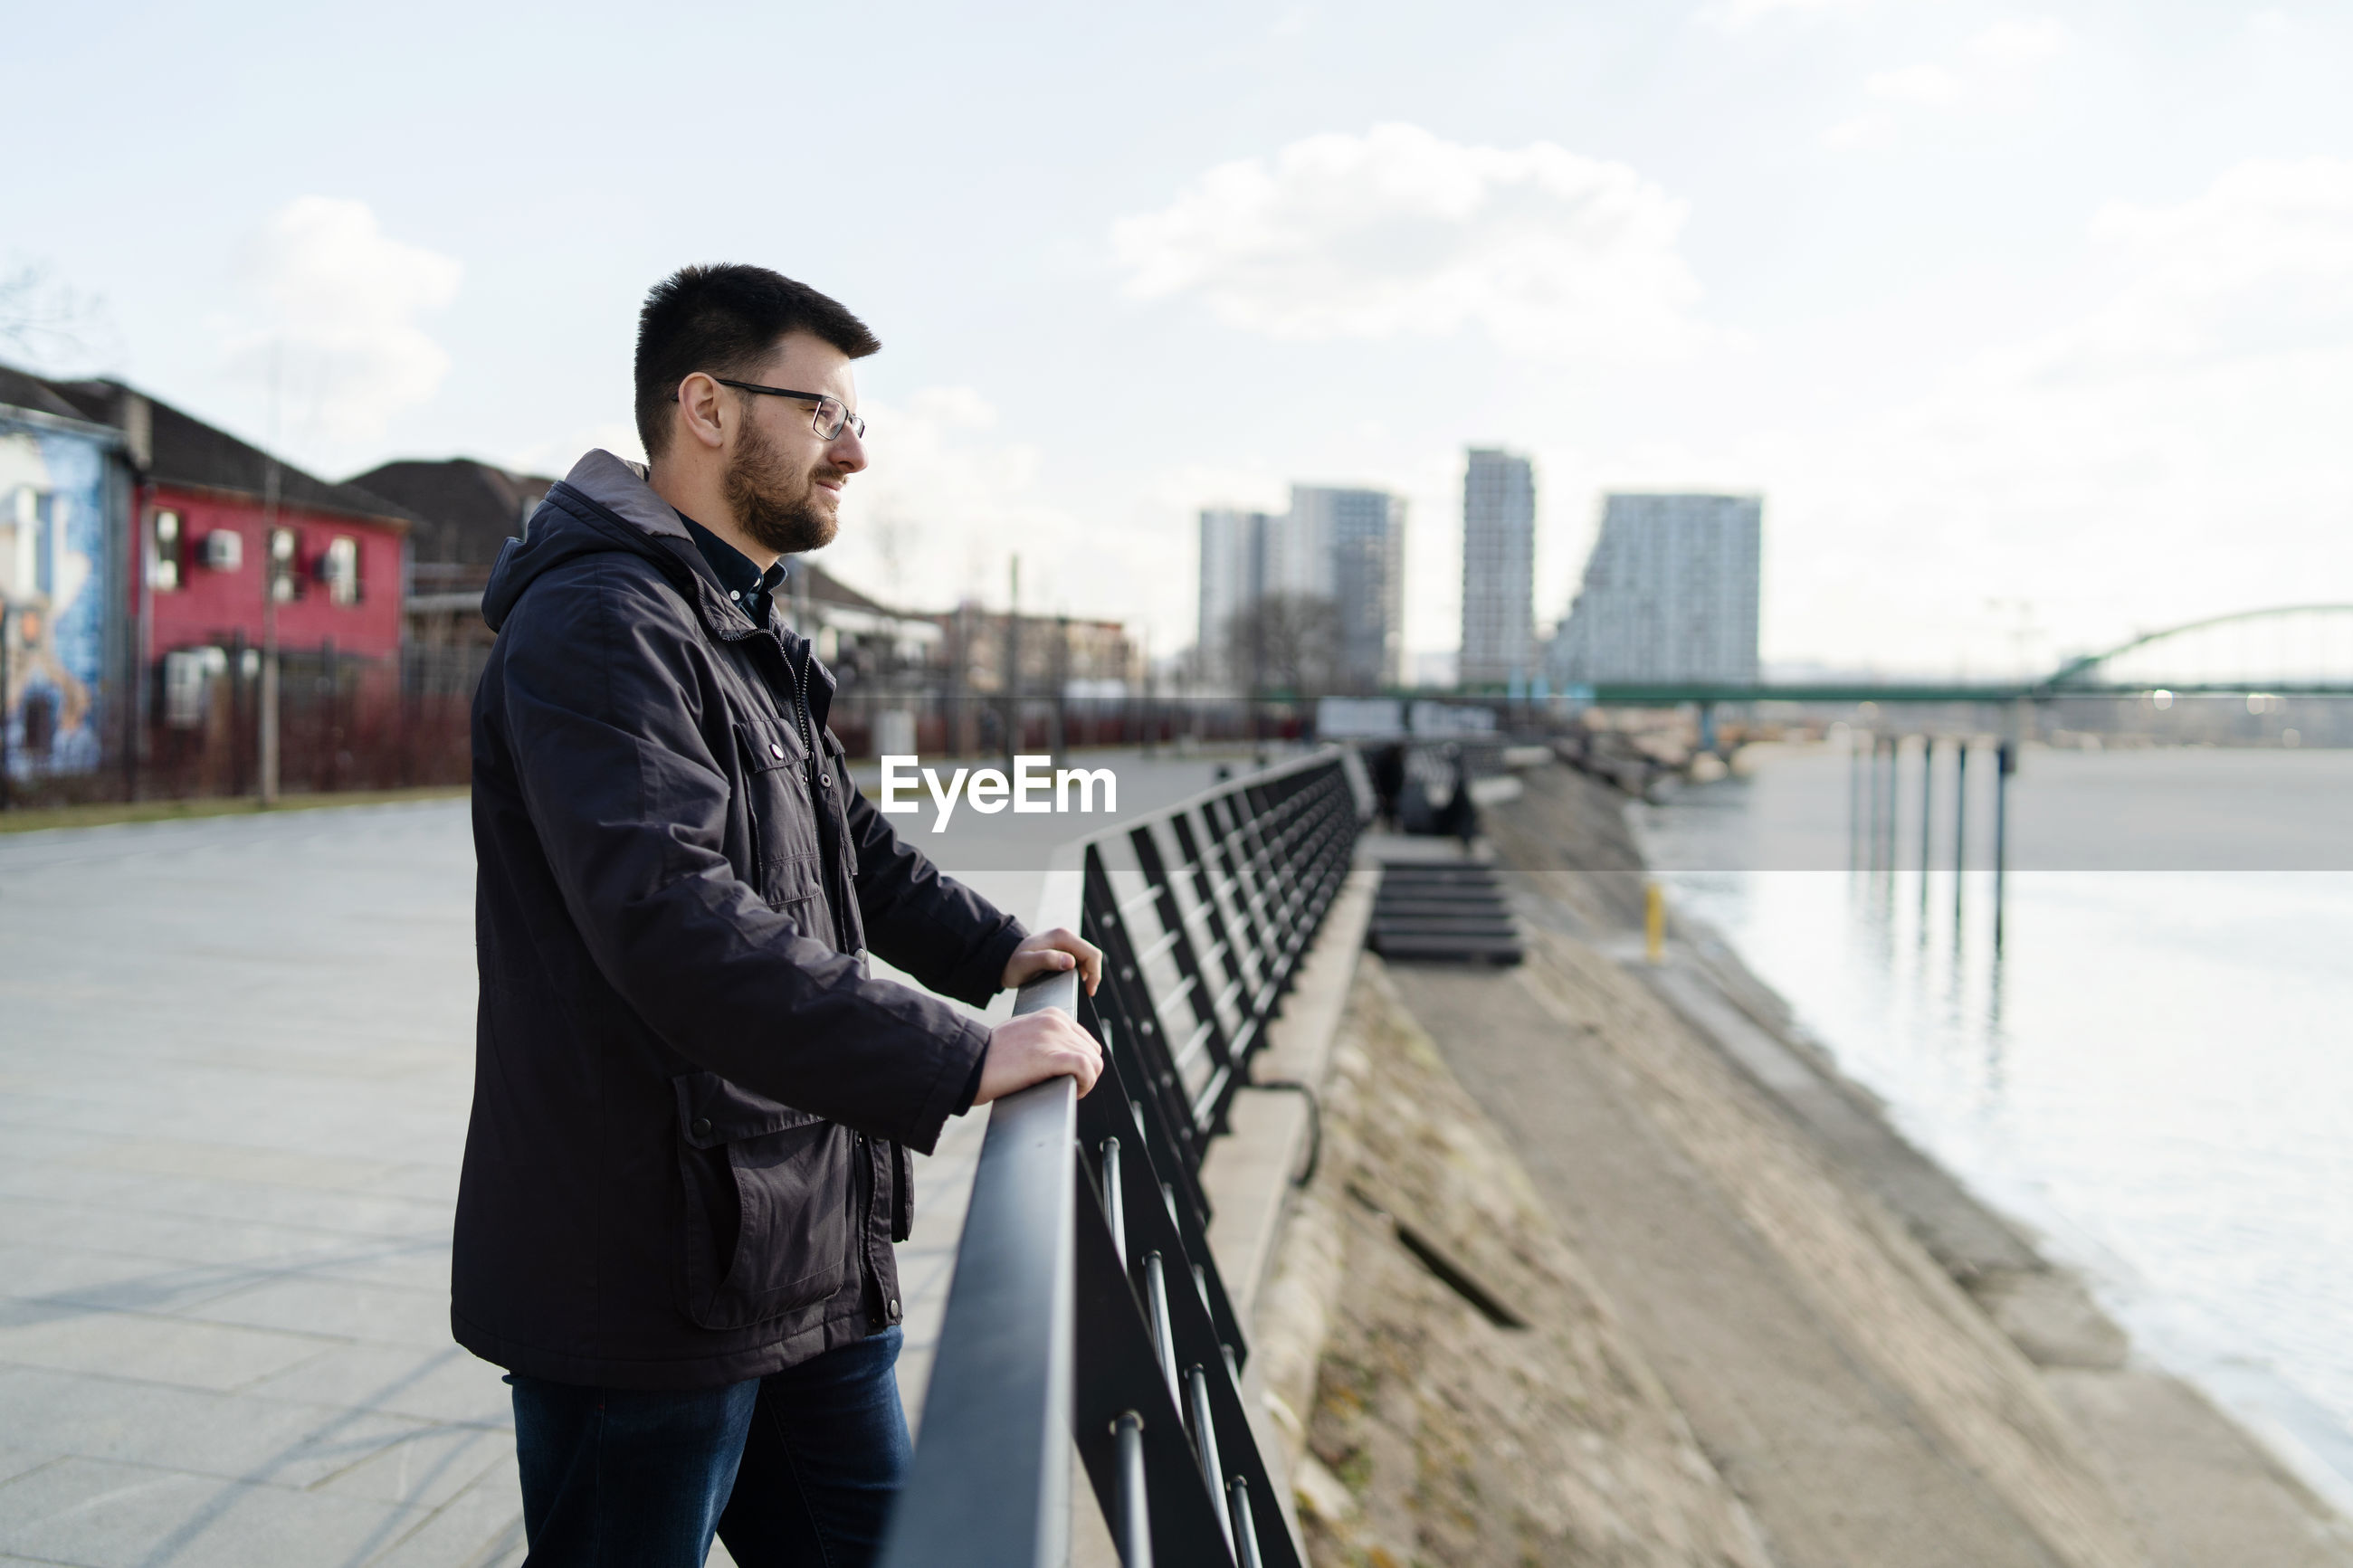 Man standing on railing in city against sky